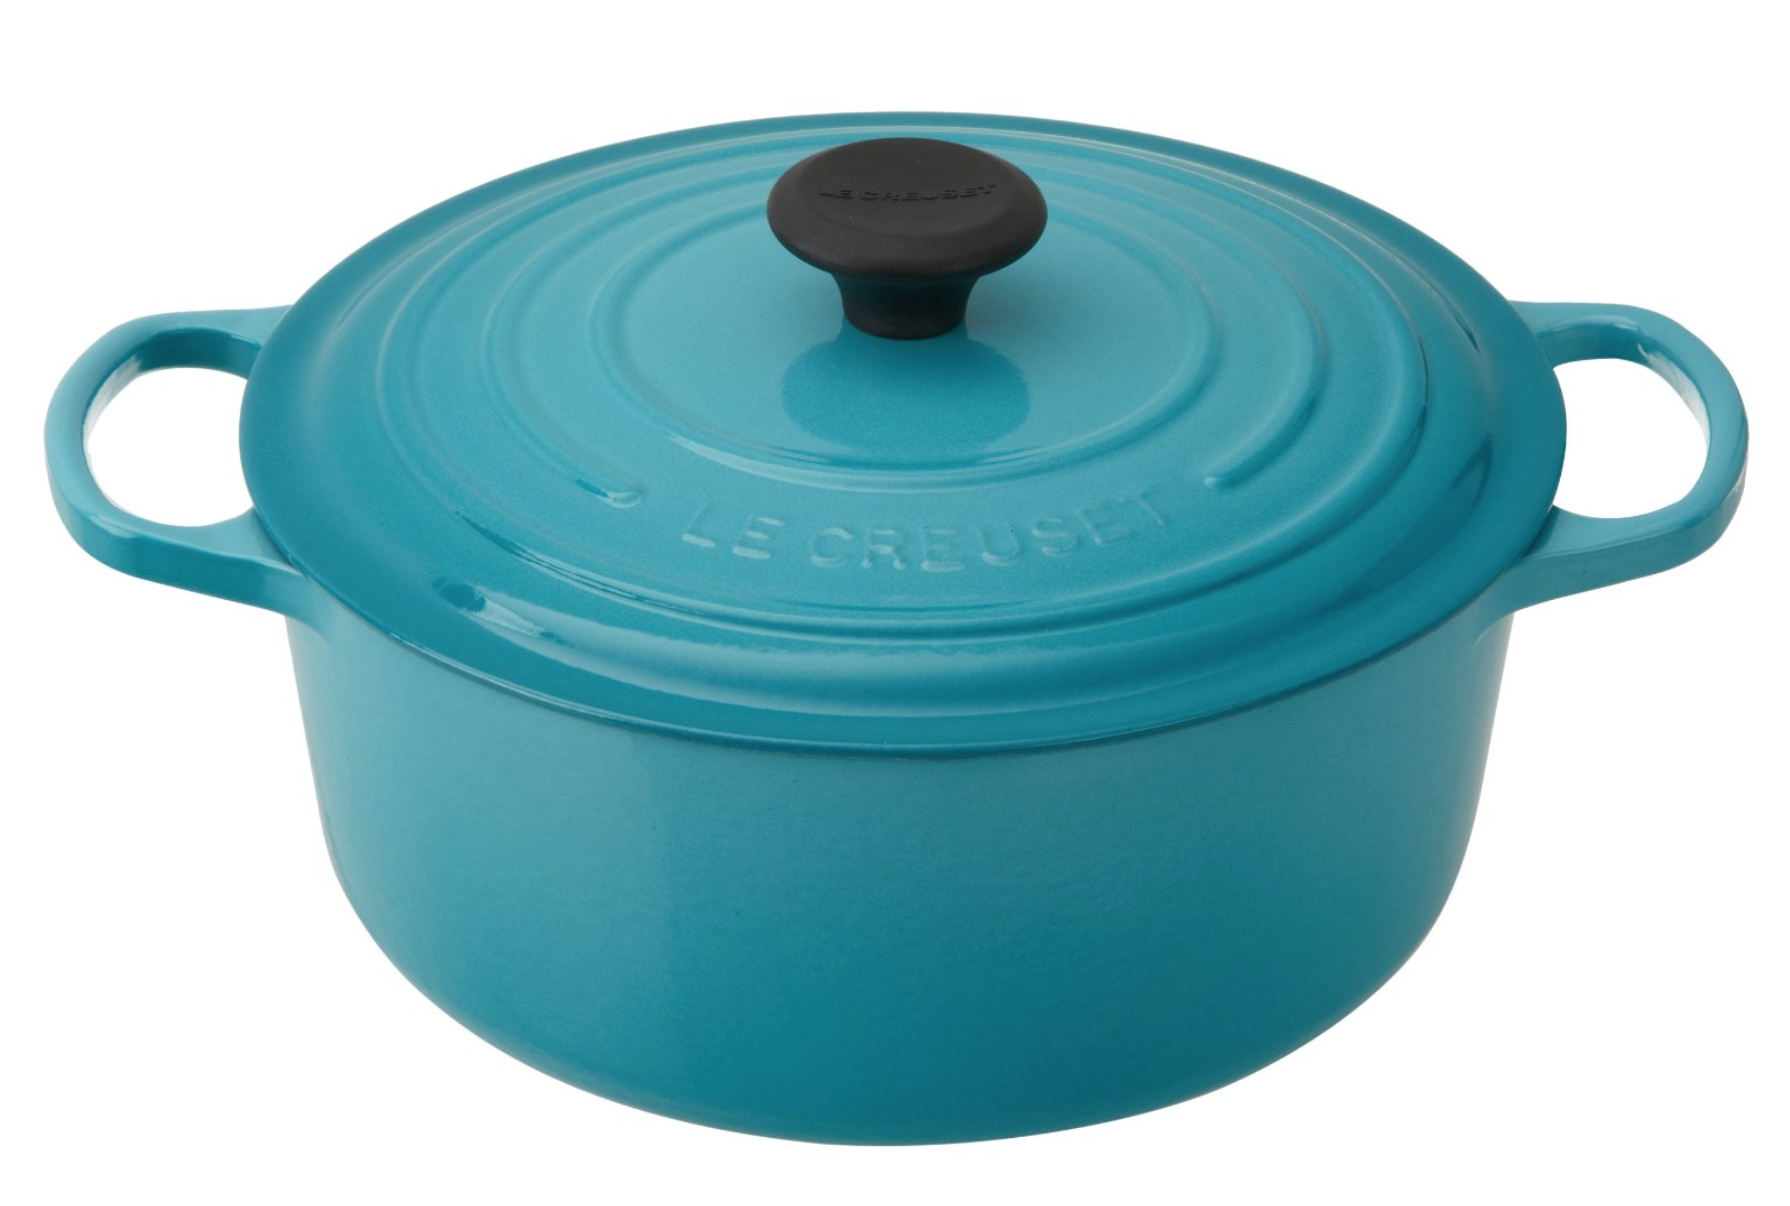 Le Creuset Cast-Iron 5-1/2-Quart Round French (Dutch) Oven